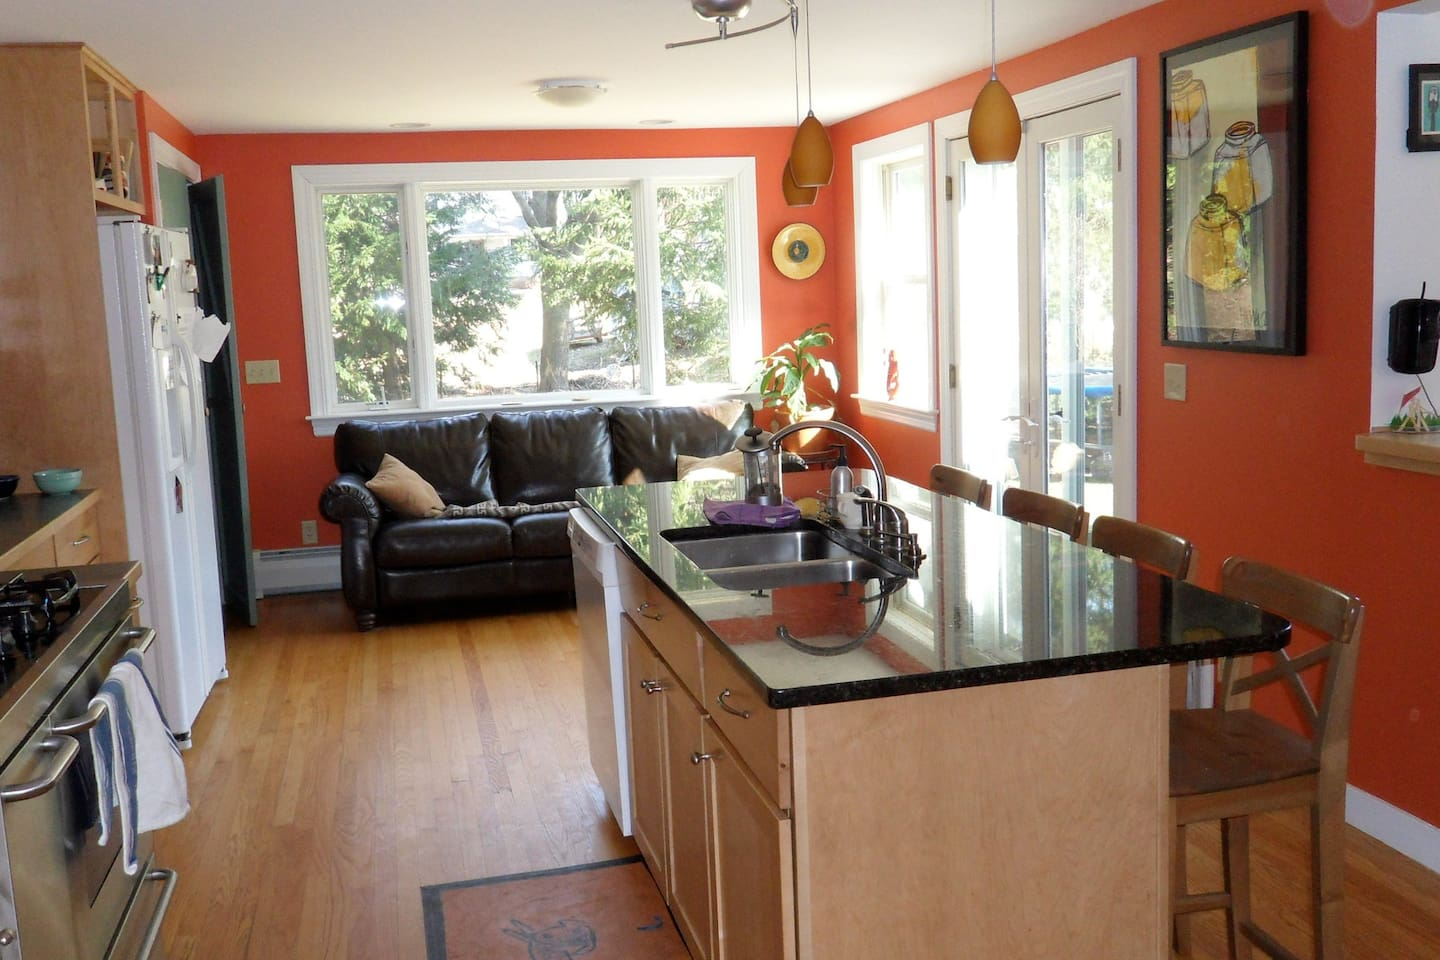 Relax in the sunny kitchen on the leather couch, or cook yourself a delicious meal.